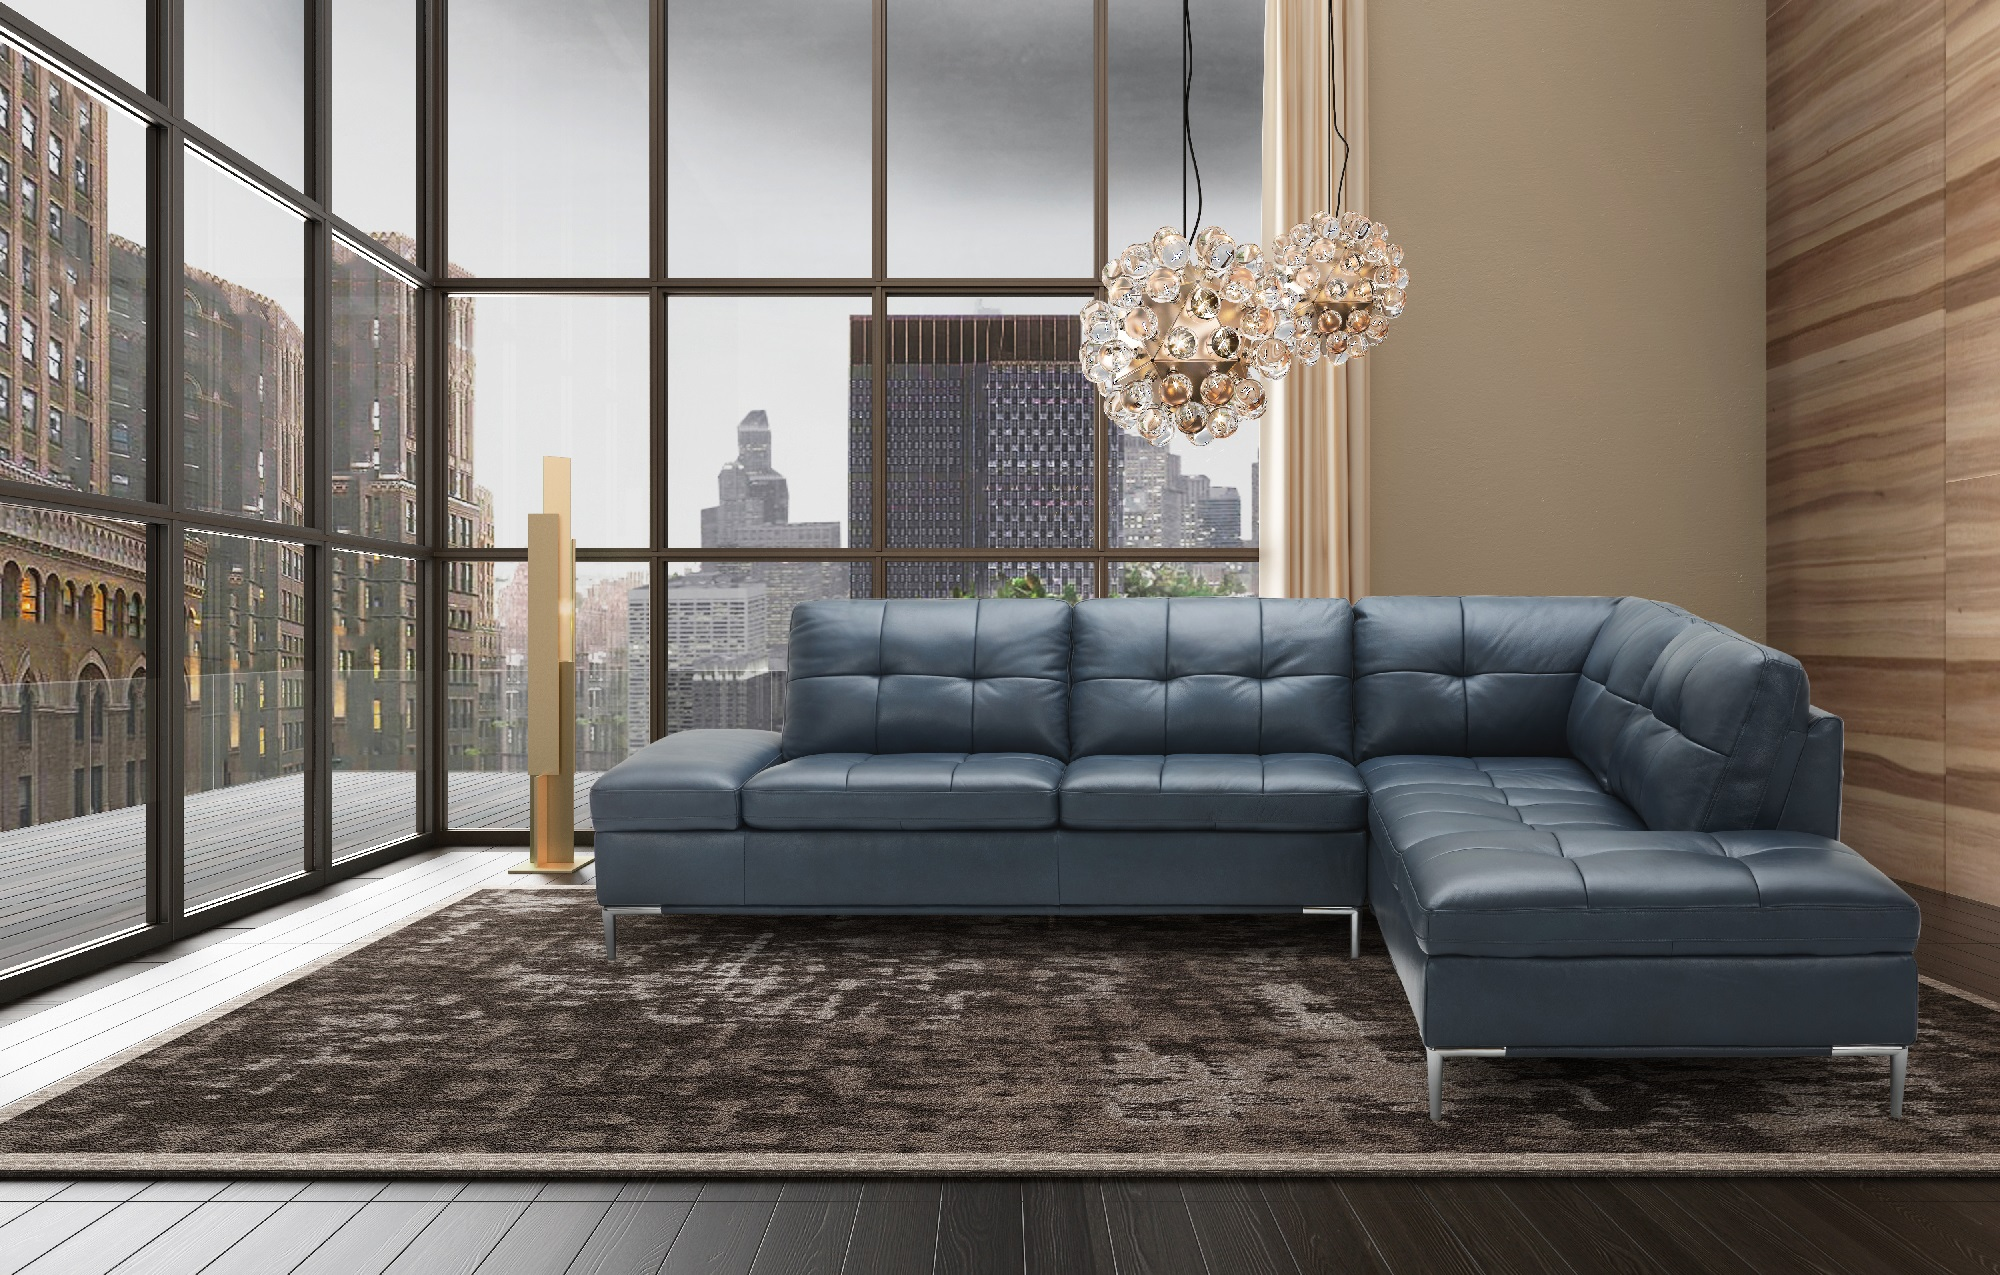 Outstanding Advanced Adjustable Tufted Leather Corner Sectional Sofa With Pillows Ibusinesslaw Wood Chair Design Ideas Ibusinesslaworg